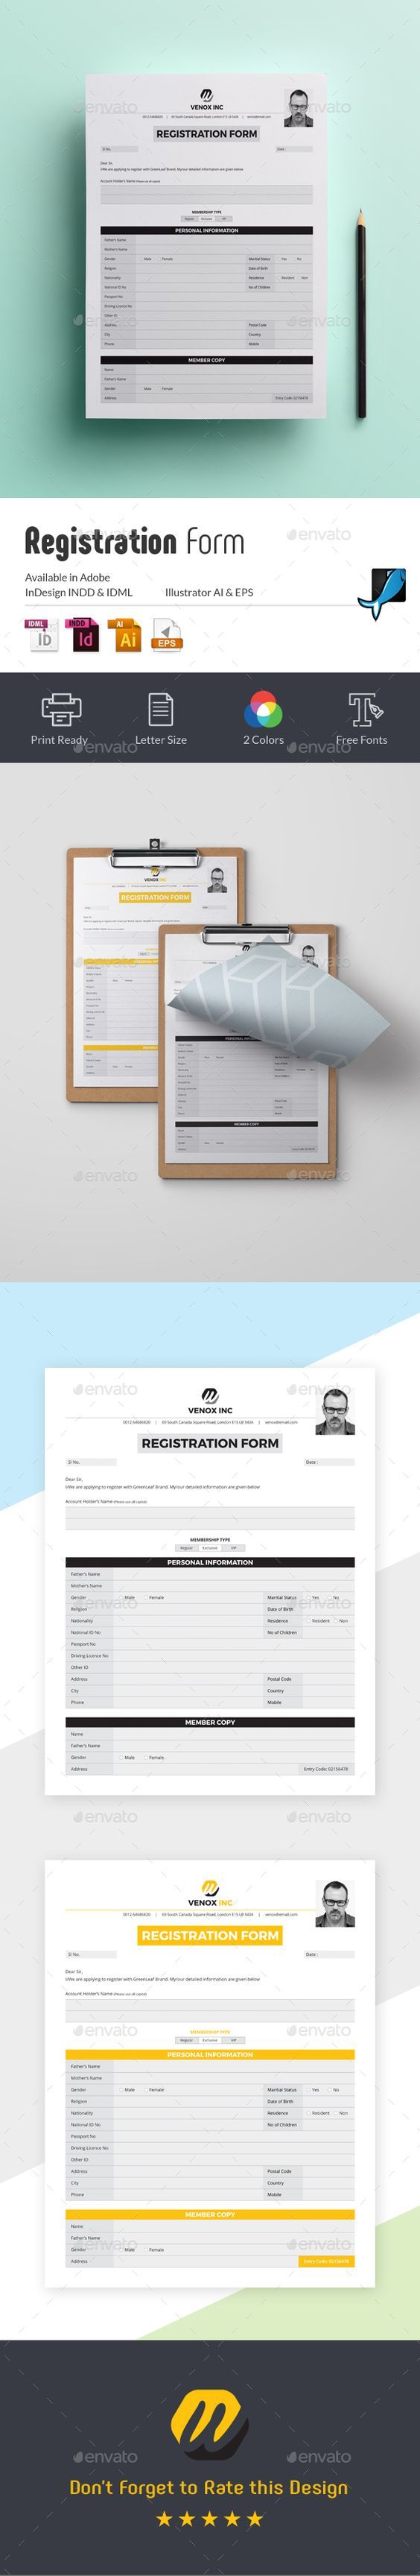 Registration Form Miscellaneous Print Templates 72